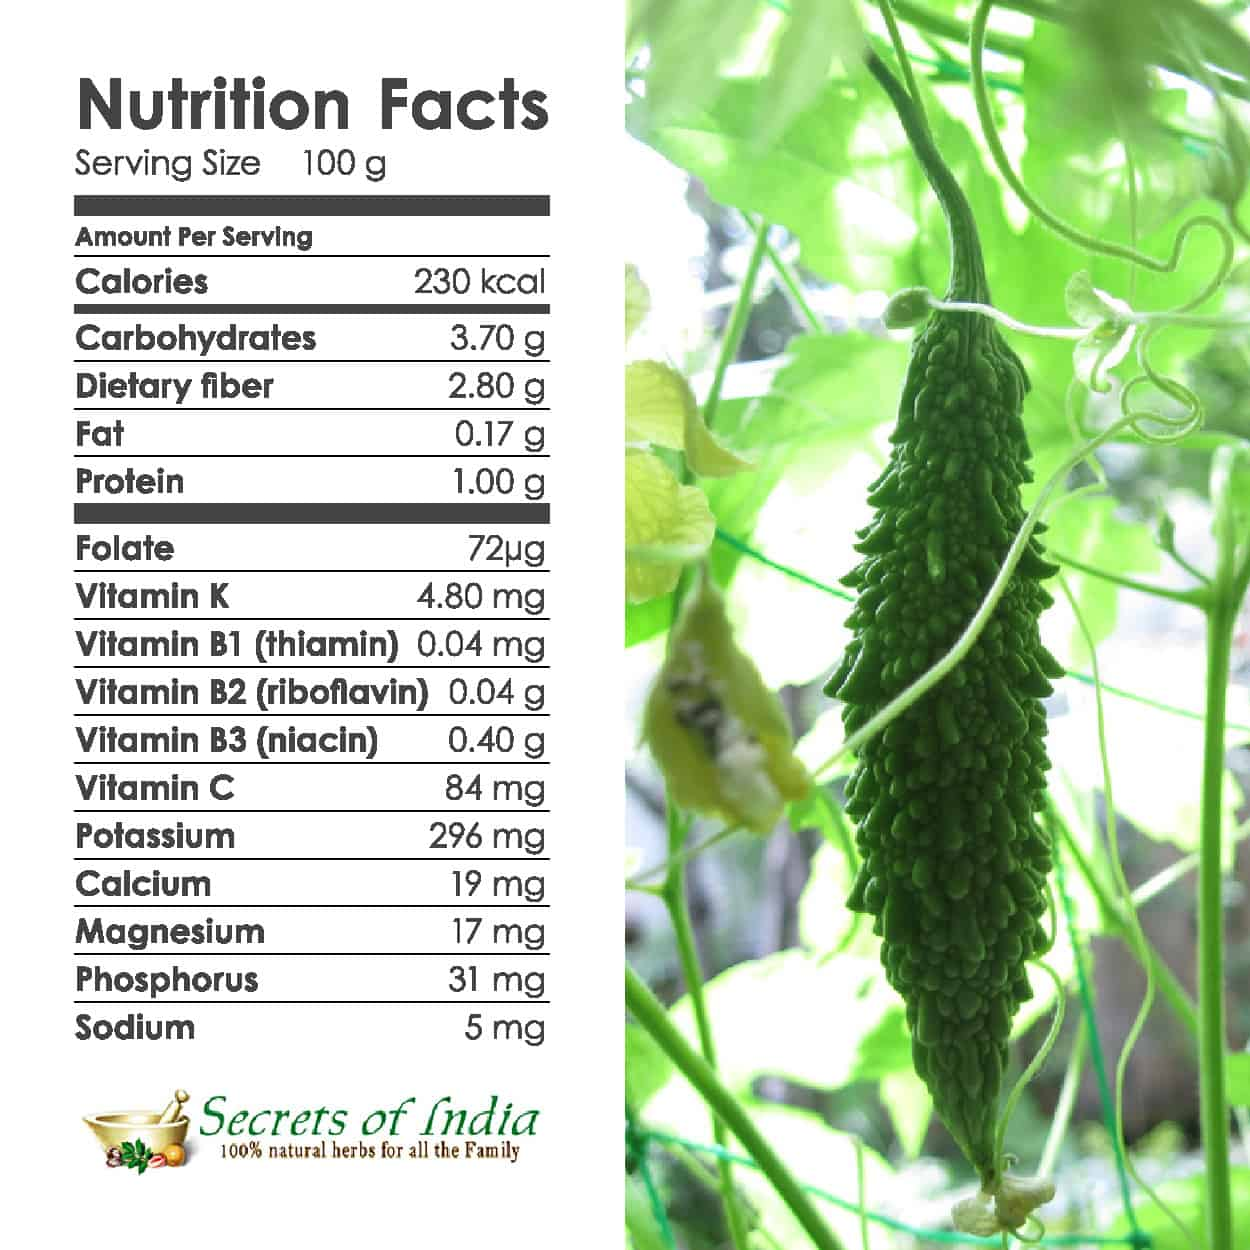 bitter melon nutrition facts essay The benefits of bitter leaf bitter melon gourd: more nutrients raw or cooked coffee bean & tea leaf nutrition information.